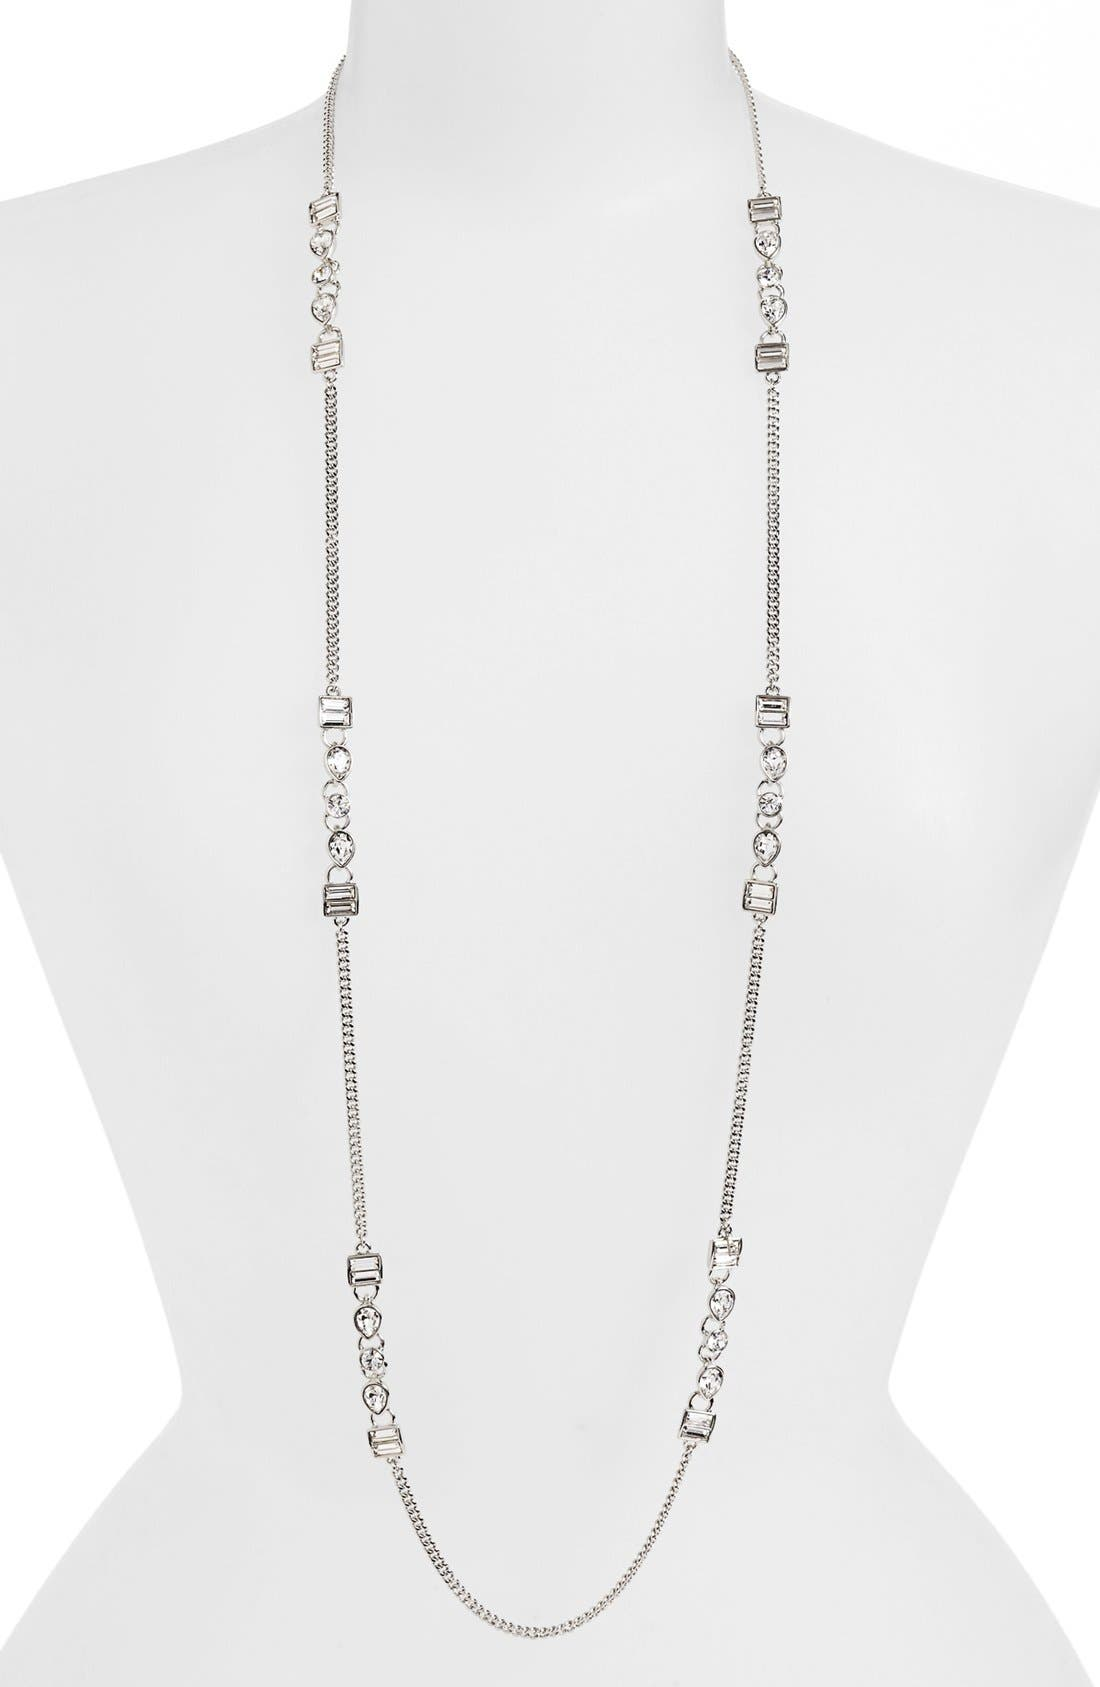 Alternate Image 1 Selected - Givenchy Crystal Station Necklace (Nordstrom Exclusive)